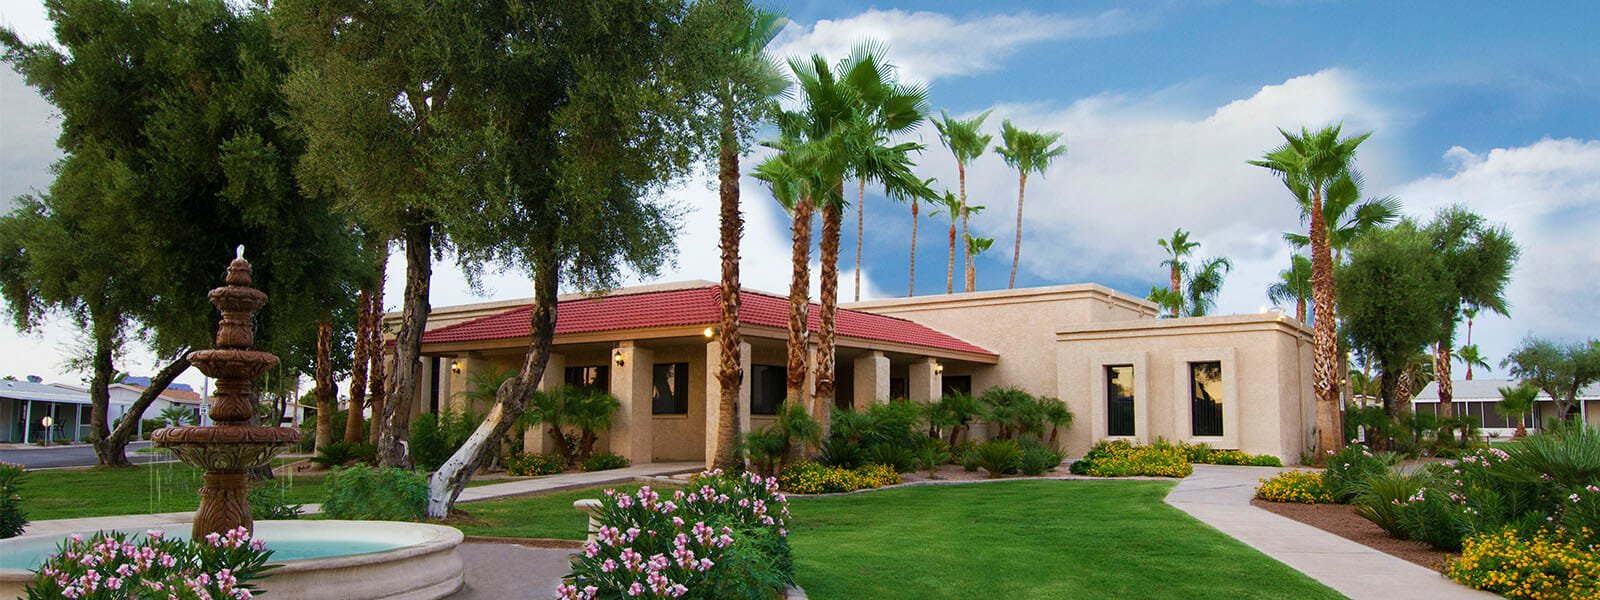 Sunrise Village Active Adult 55+ Community near Phoenix AZ